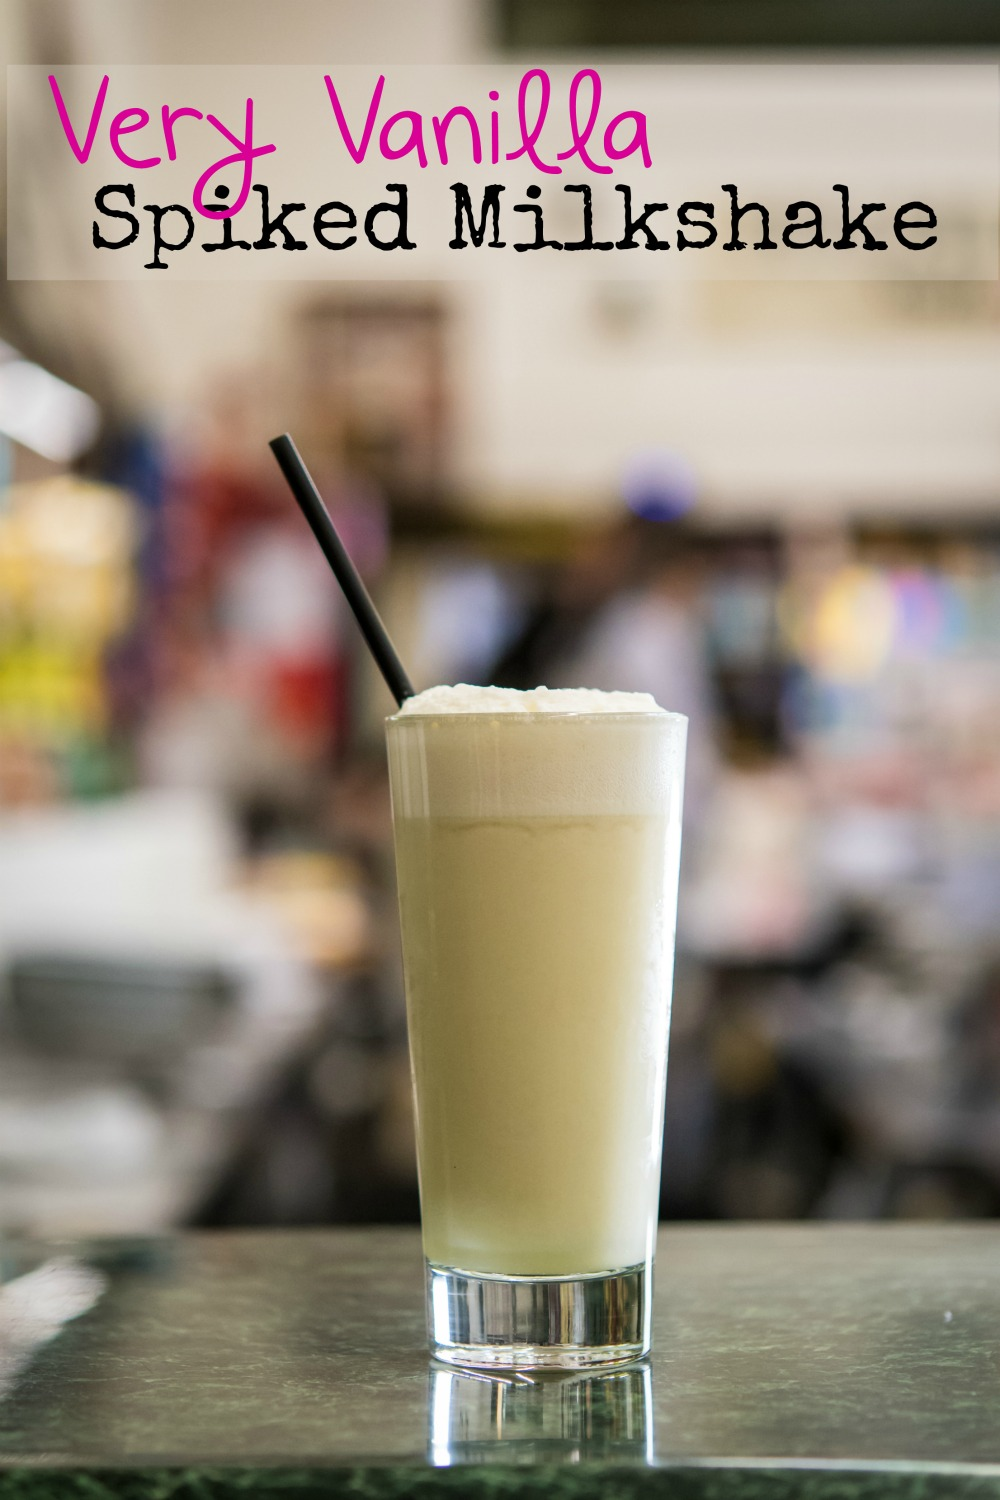 This Very Vanilla boozy milkshake is spiked with bourbon whiskey for just the right amount of alcohol. It's a great summer cocktail drink that you can whip up in no time. It doubles as dessert, too.